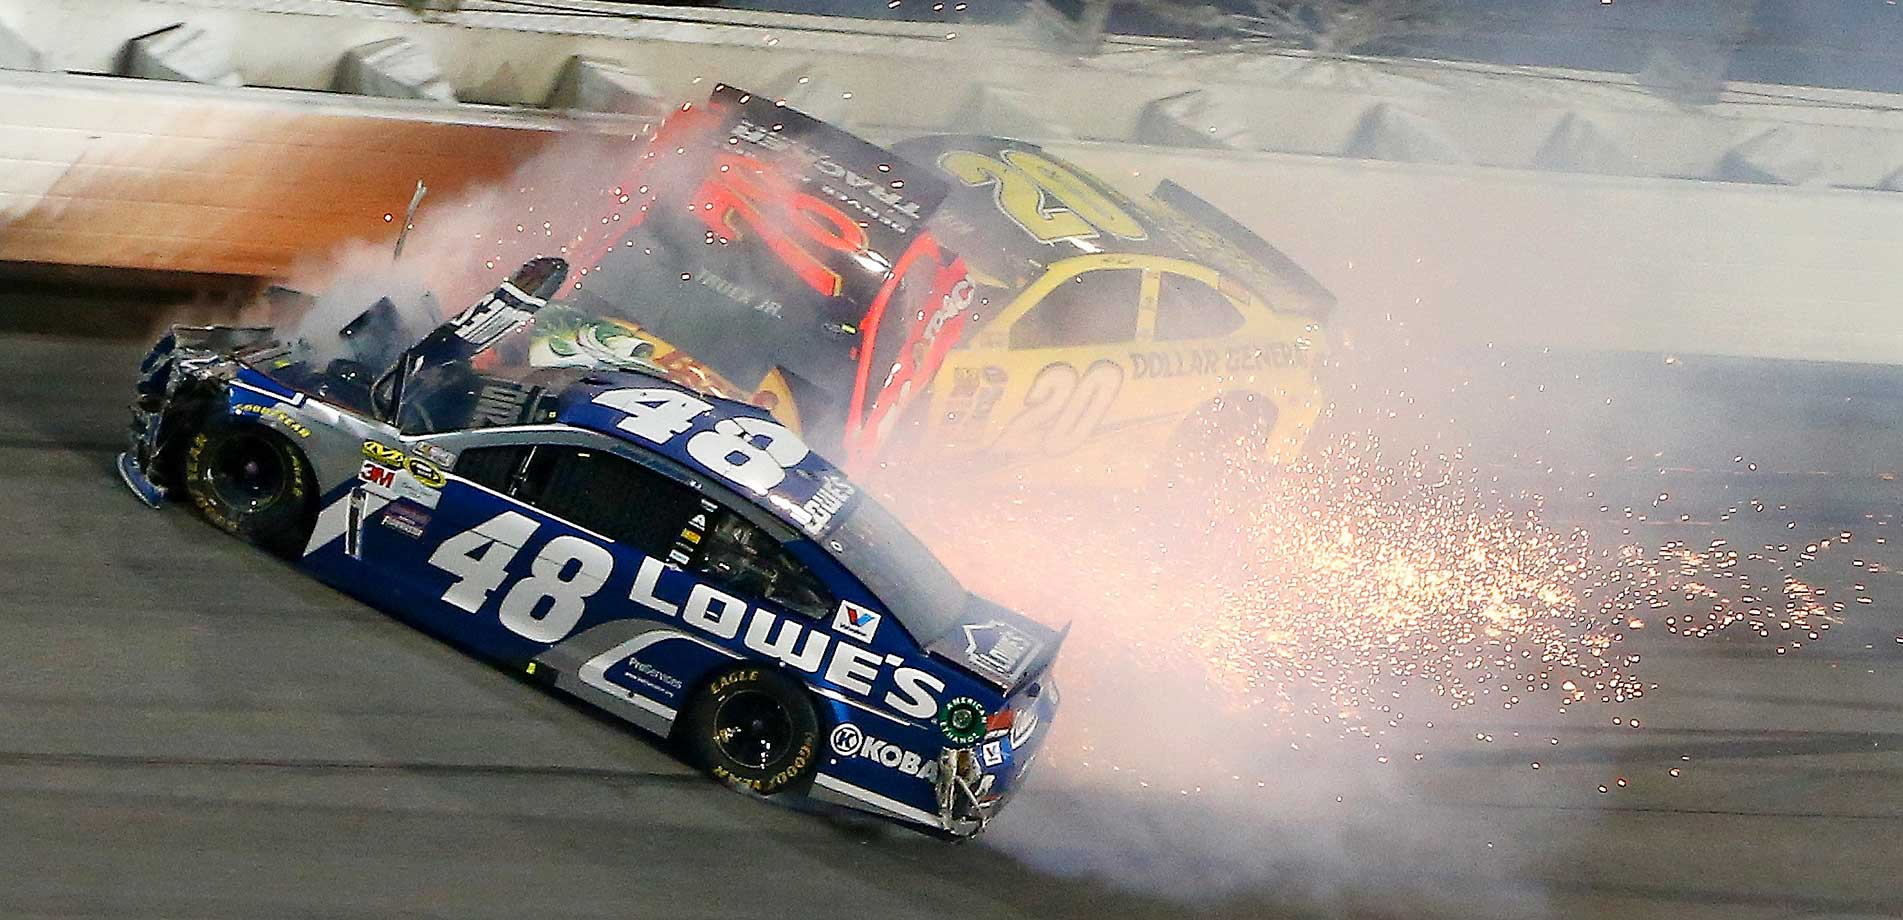 Jimmie Johnson (48), Martin Truex Jr. (78) and Matt Kenseth during an accident in the NASCAR Sprint Cup Series Can-Am Duels at Daytona International Speedway.